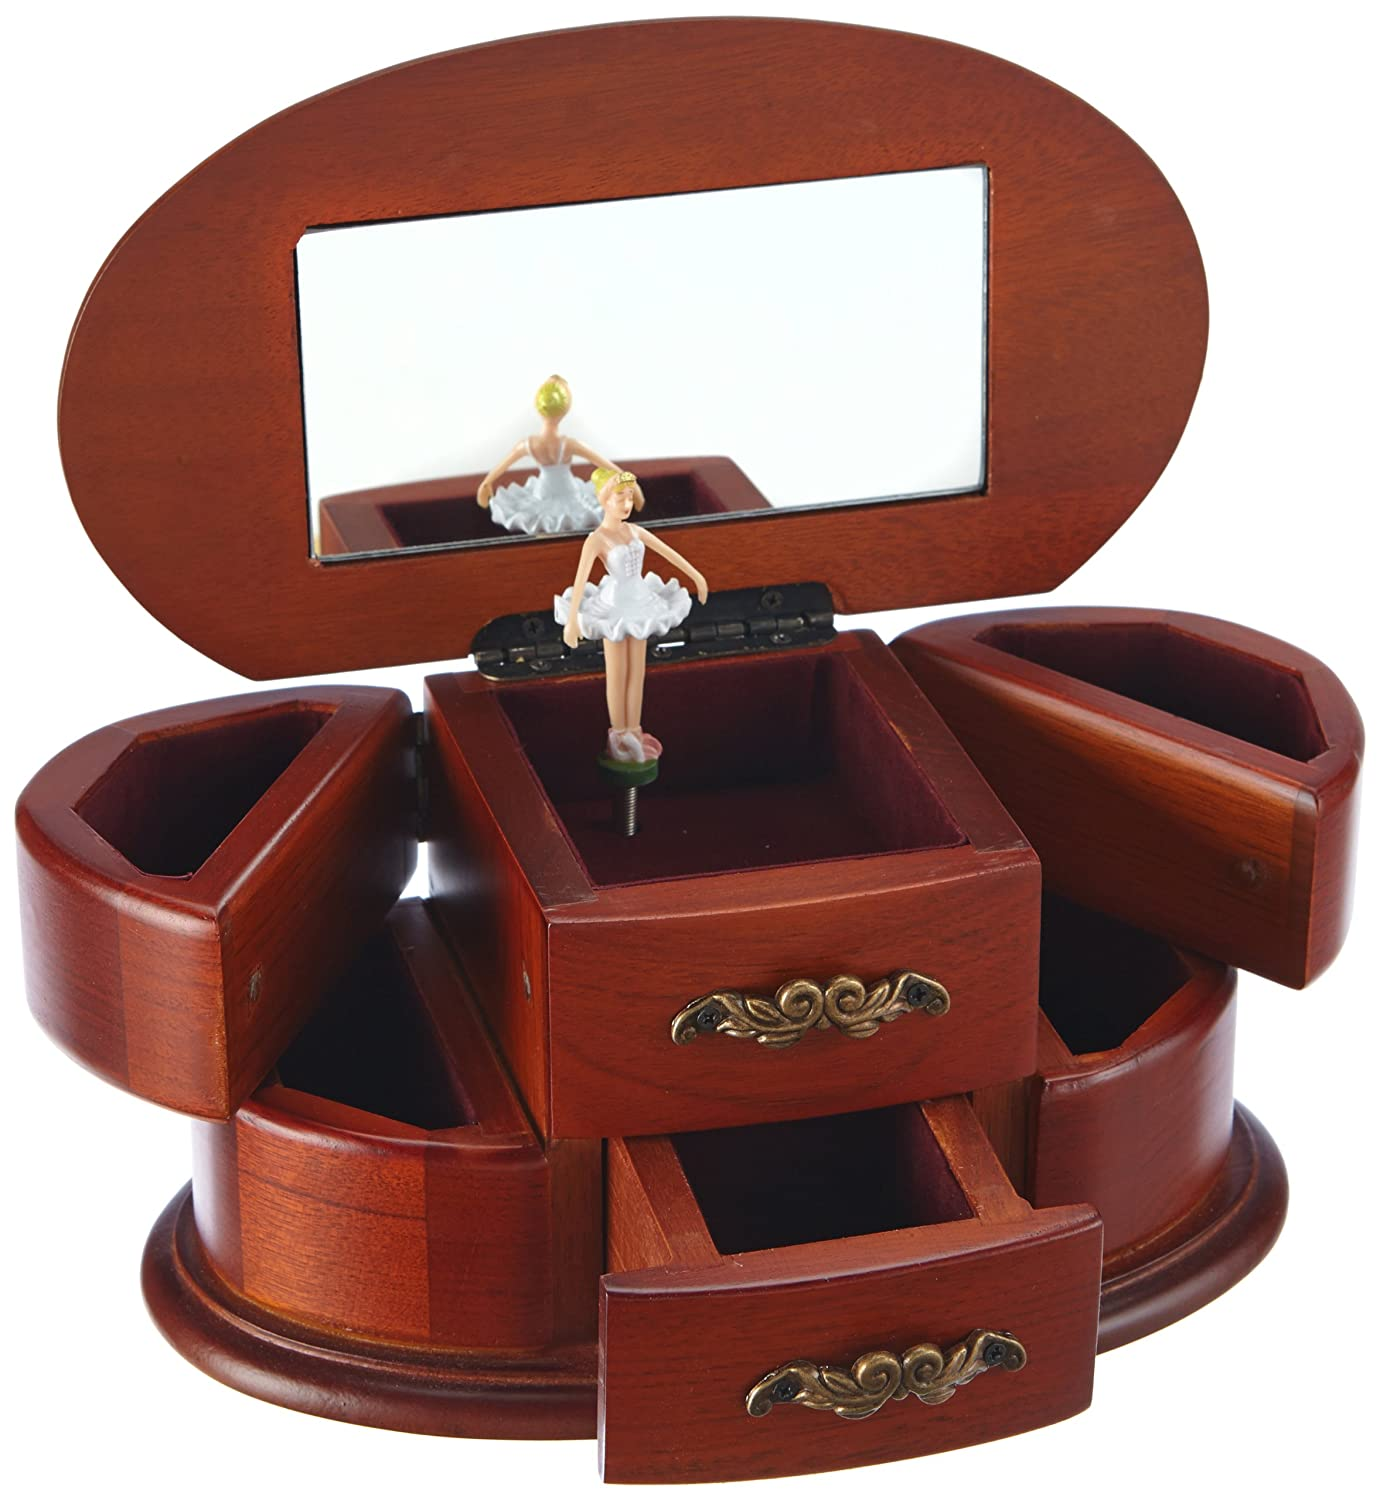 Amazoncom MusicBox Kingdom 16066 Wooden Ballerina Musical Jewelry